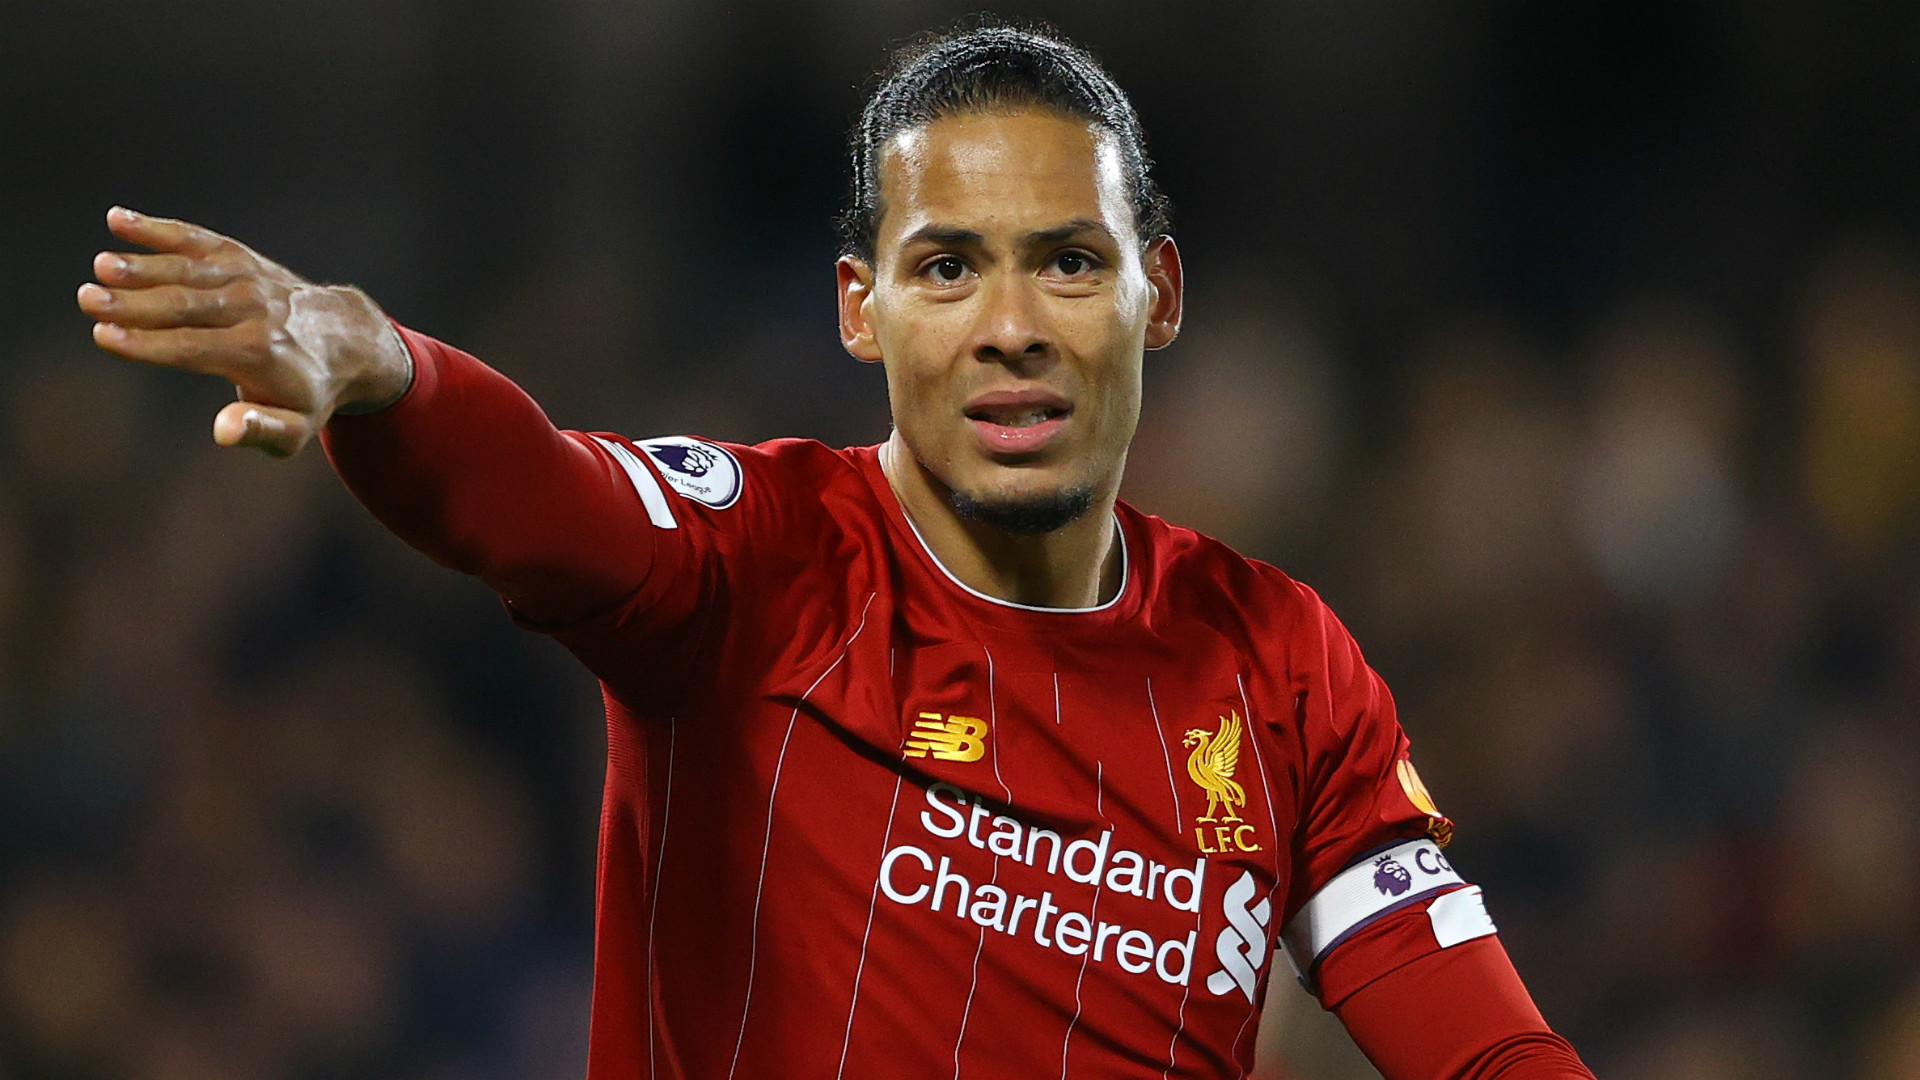 Netherlands to miss captain Van Dijk at Euro 2020